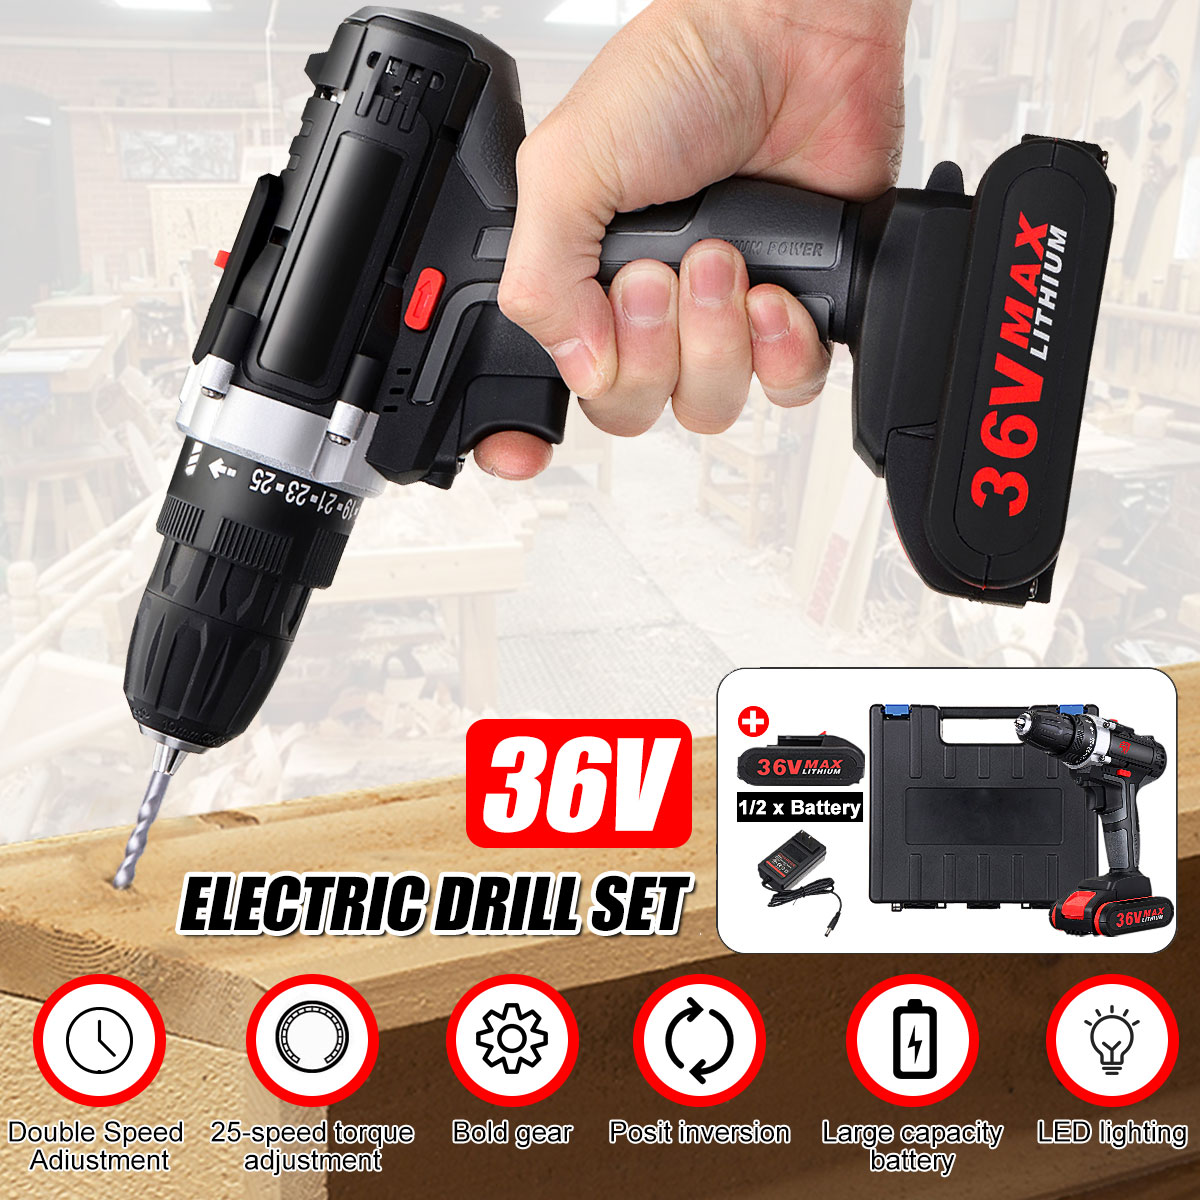 36V 5000mAh Cordless Electric Drill Rechargeable Battery Double Speed LED Screwdriver 25-Speed Torque Adjustment36V 5000mAh Cordless Electric Drill Rechargeable Battery Double Speed LED Screwdriver 25-Speed Torque Adjustment